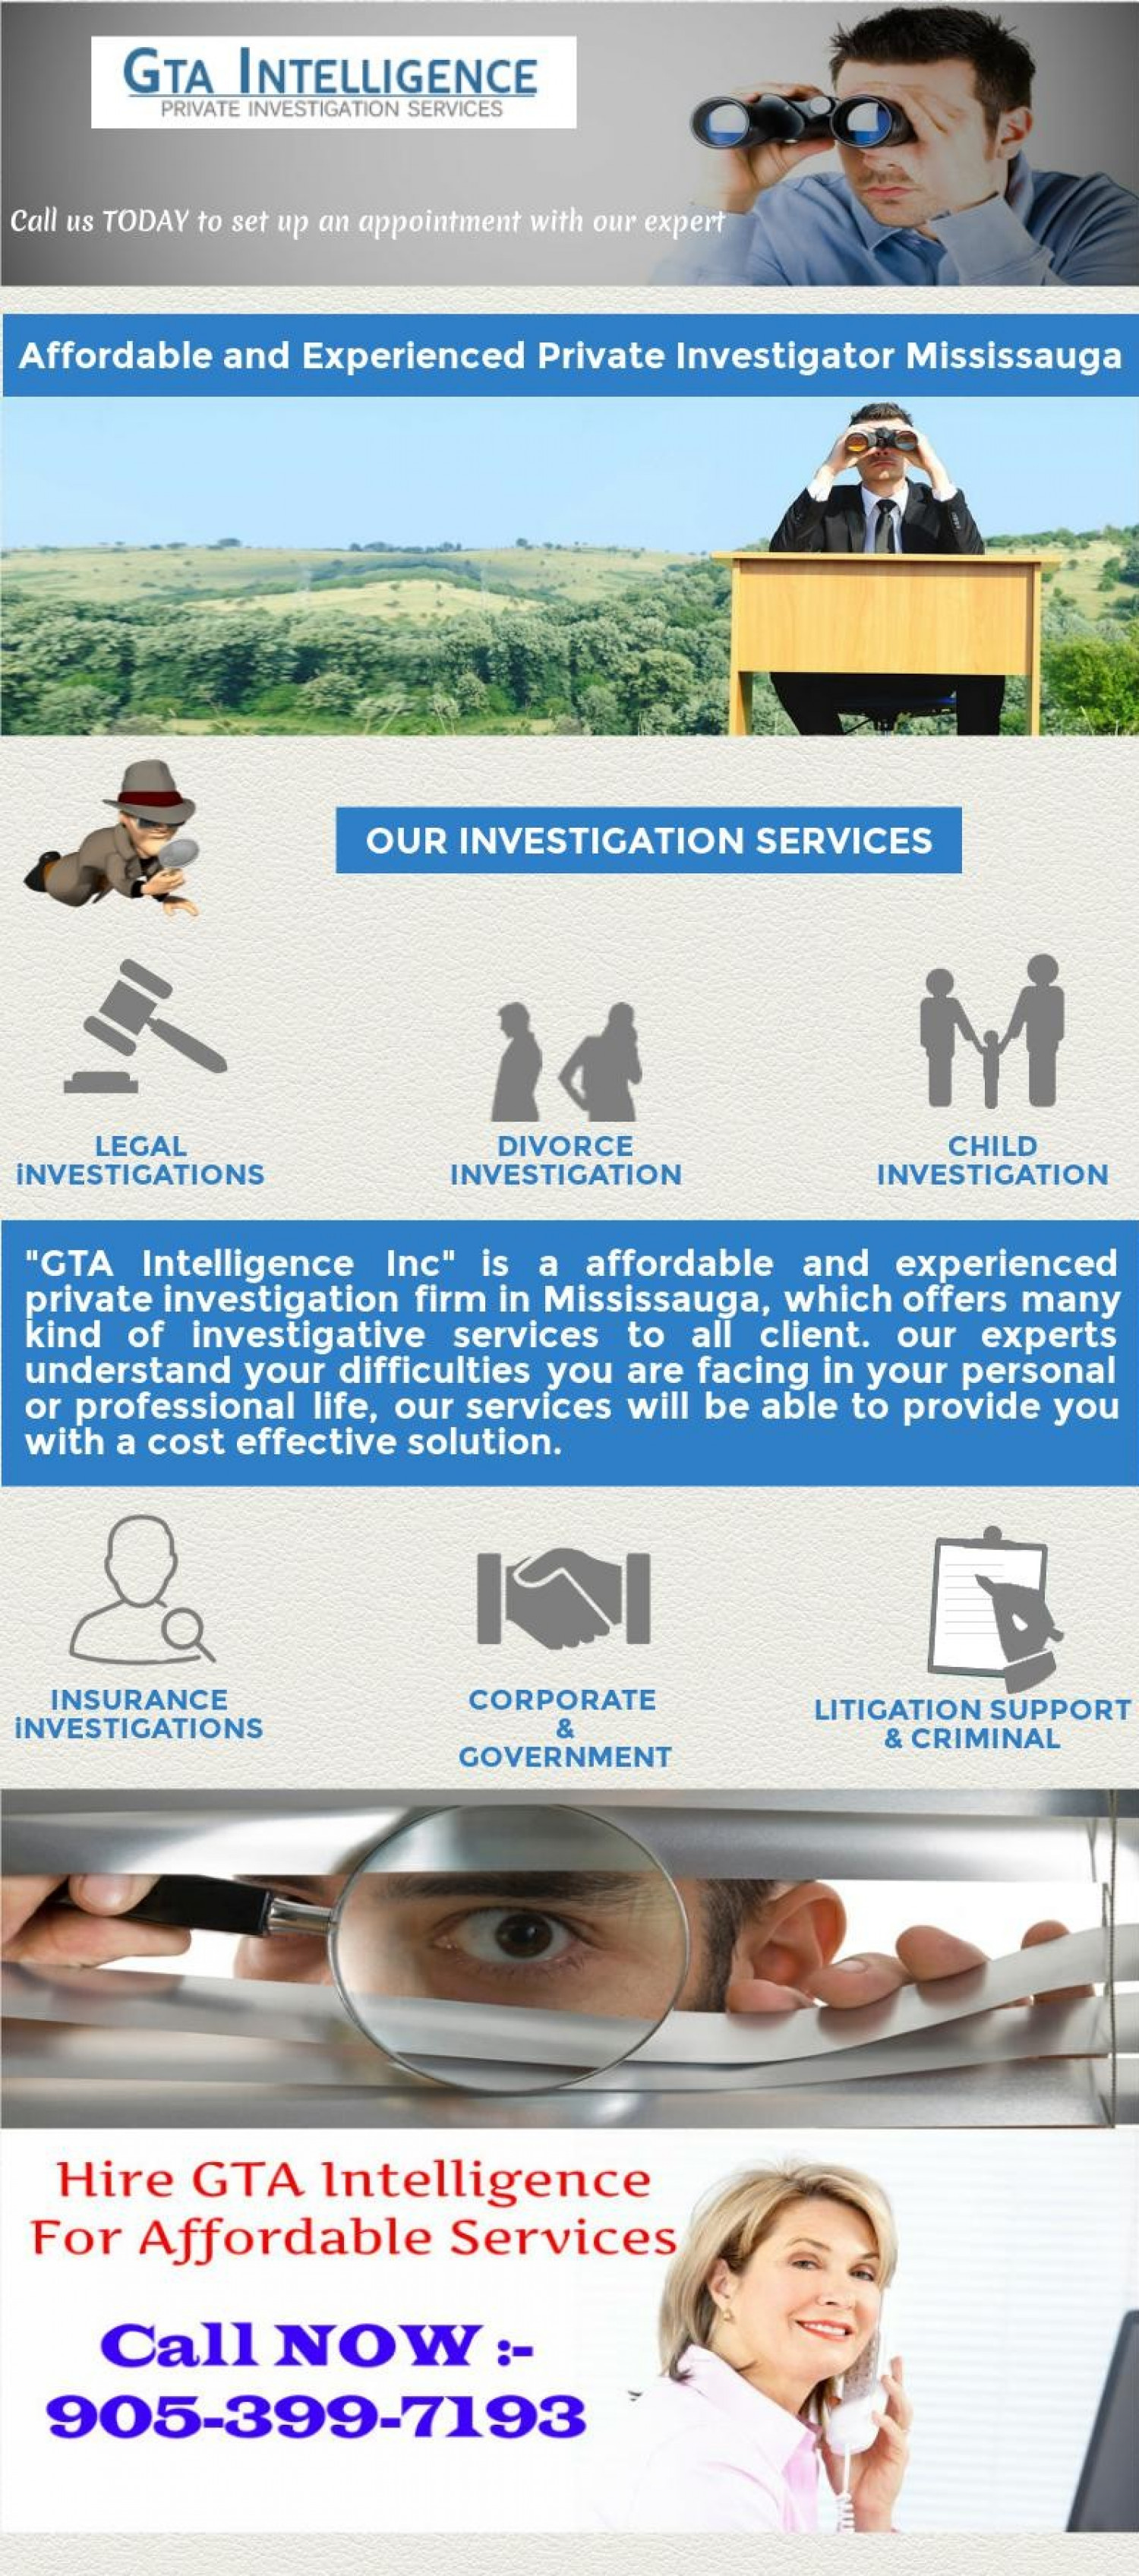 Affordable and Experienced Private Investigator Mississauga